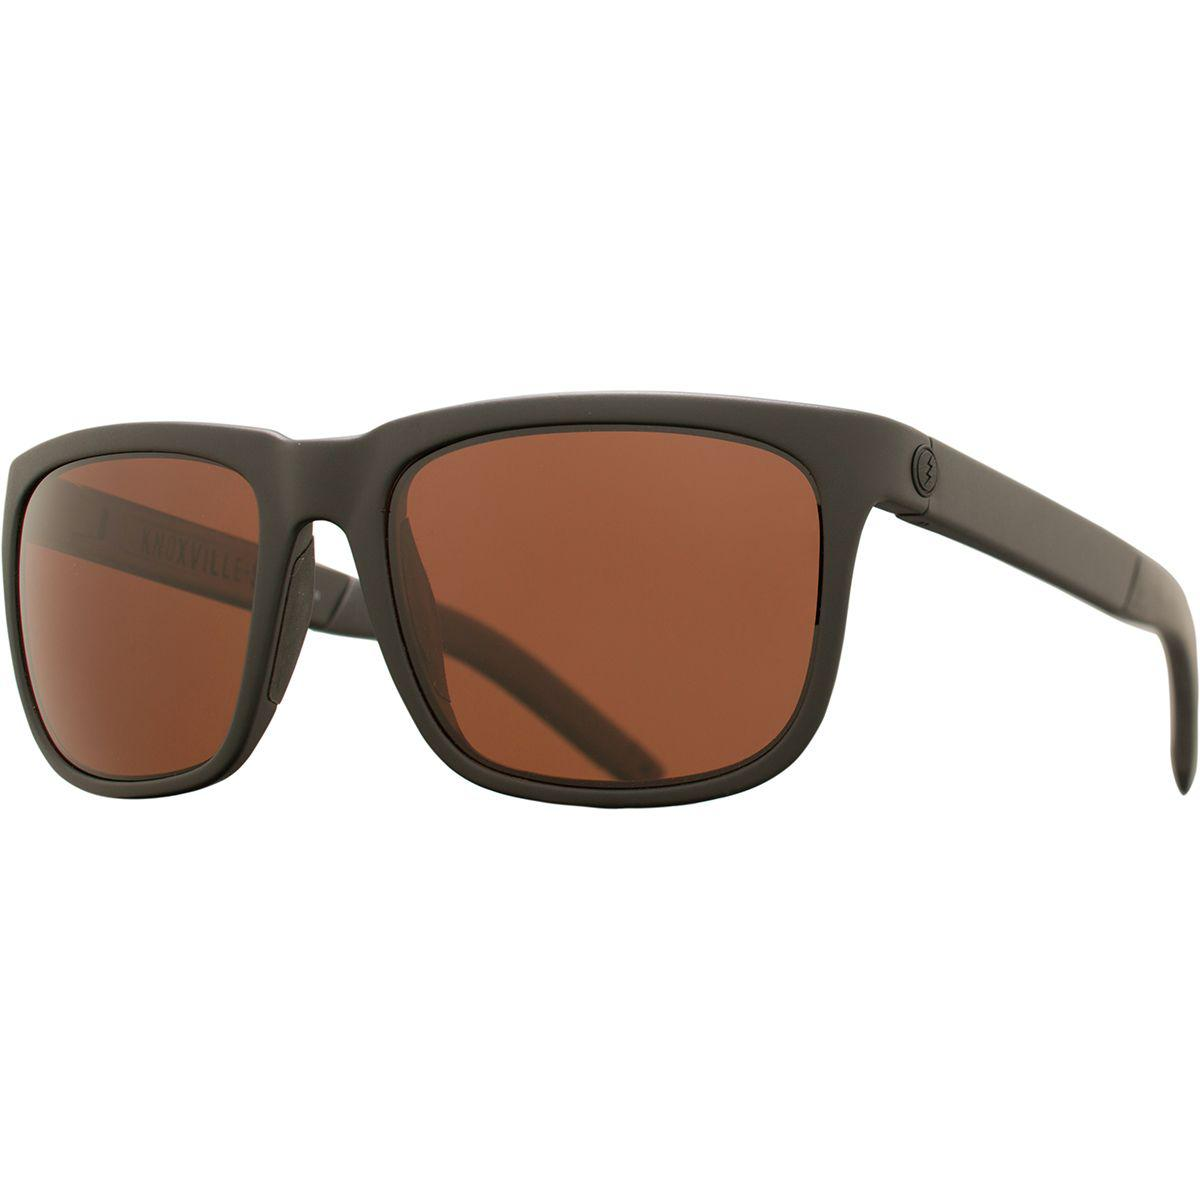 89e7a01904a Lyst - Electric Knoxville S Polarized Sunglasses in Brown for Men